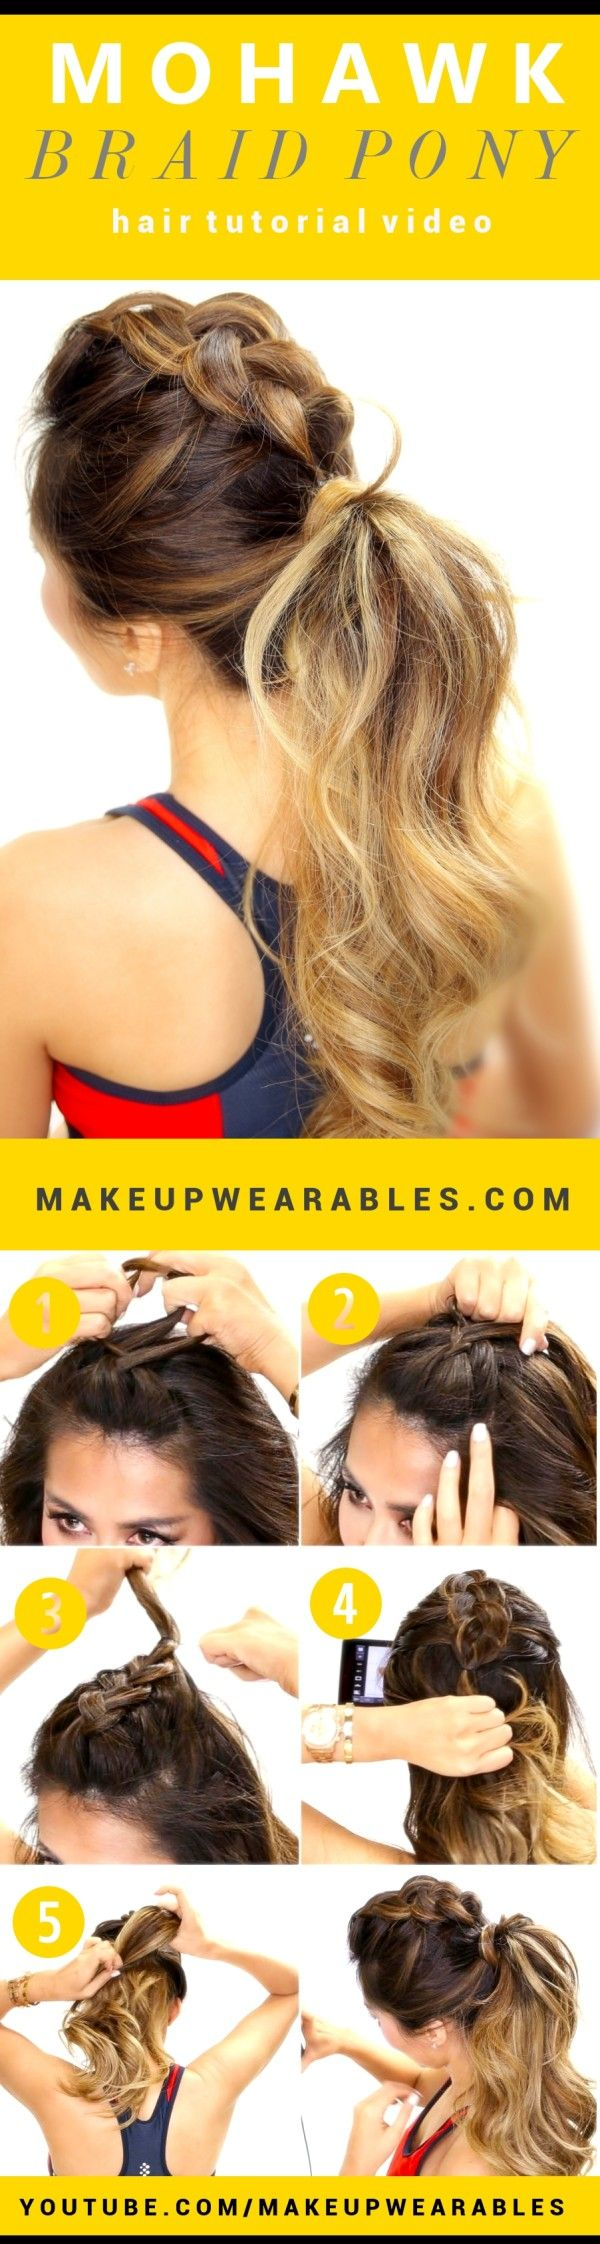 Spectacular DIY Hairstyle Ideas For A Busy Morning Made For - 15 spectacular diy hairstyle ideas